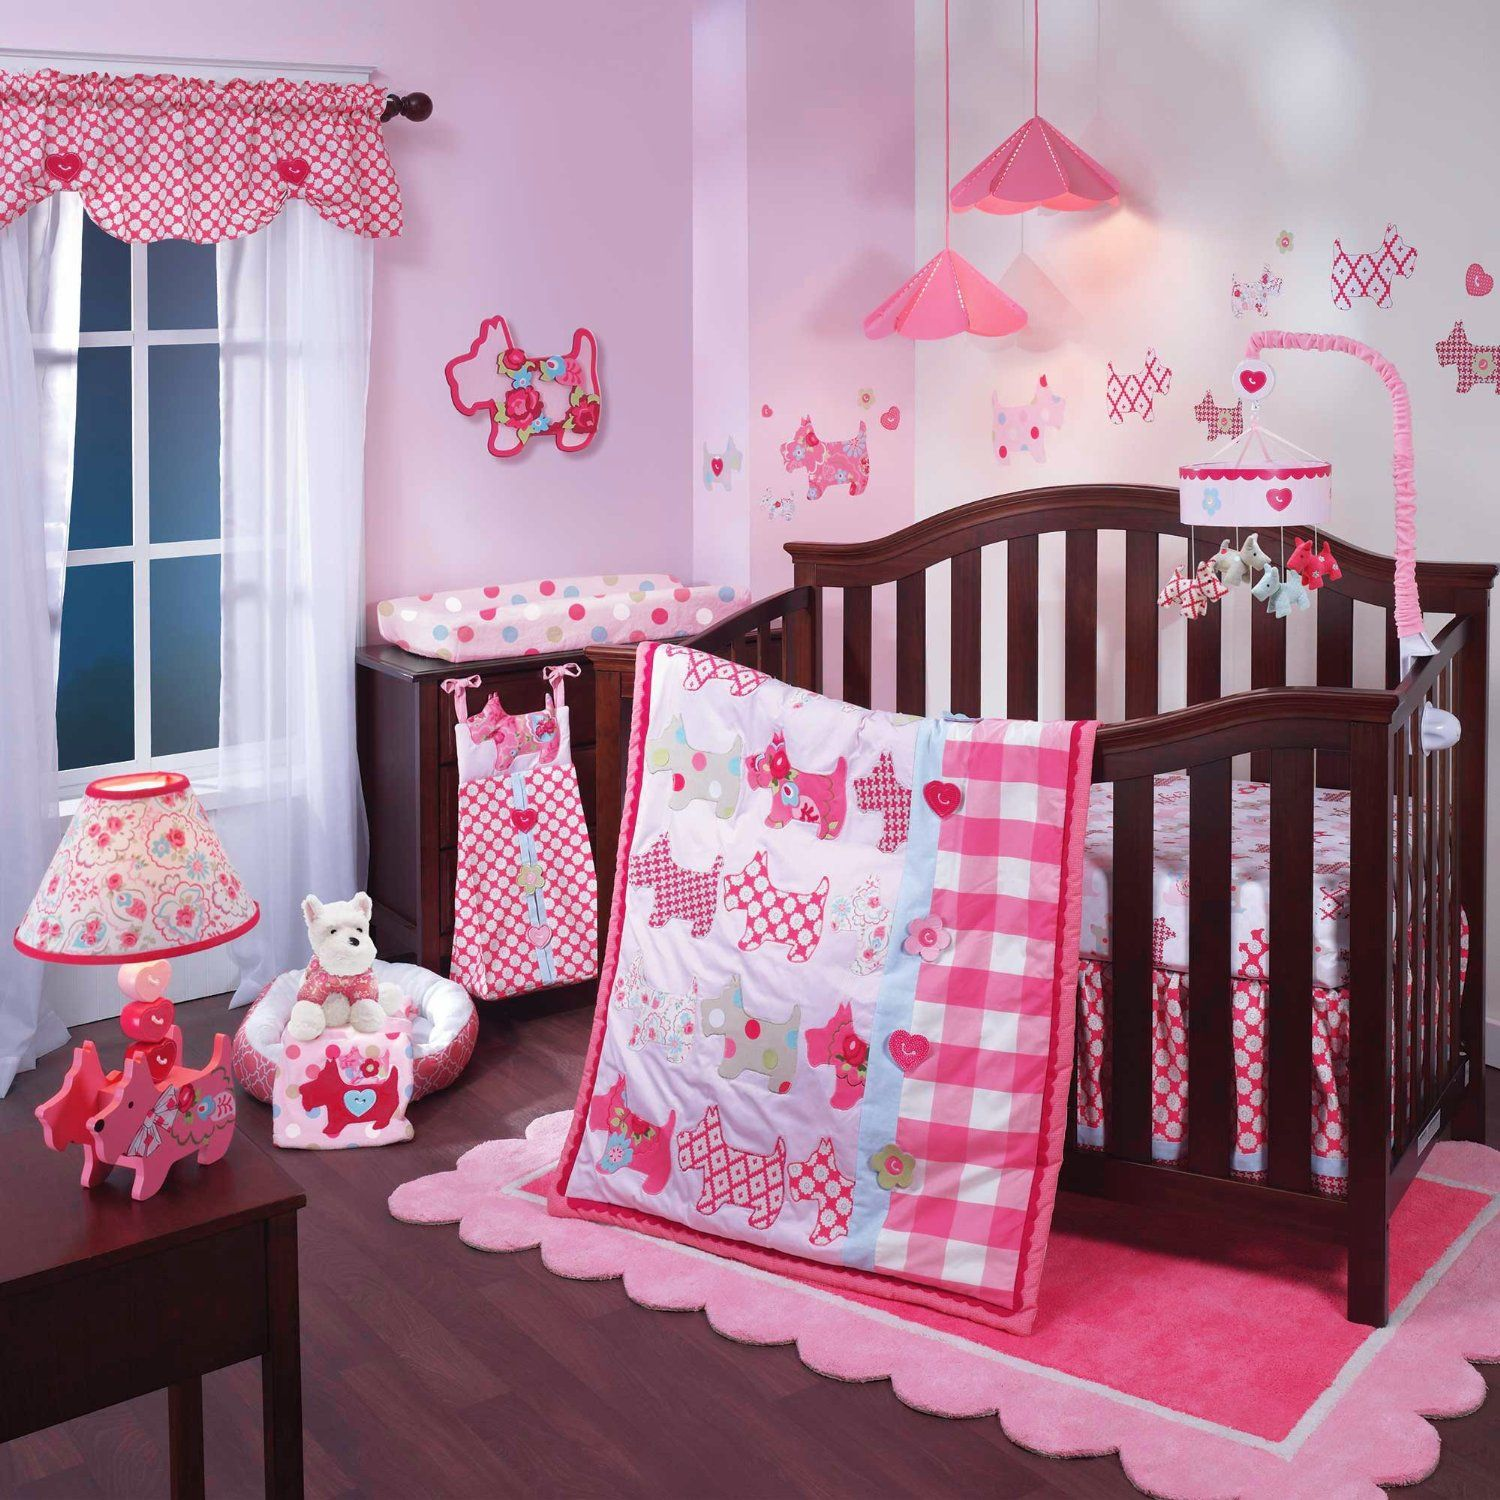 Puppy Tales 5 Piece Baby Crib Bedding Set with Bumper by Lambs & Ivy - Amazon.com :